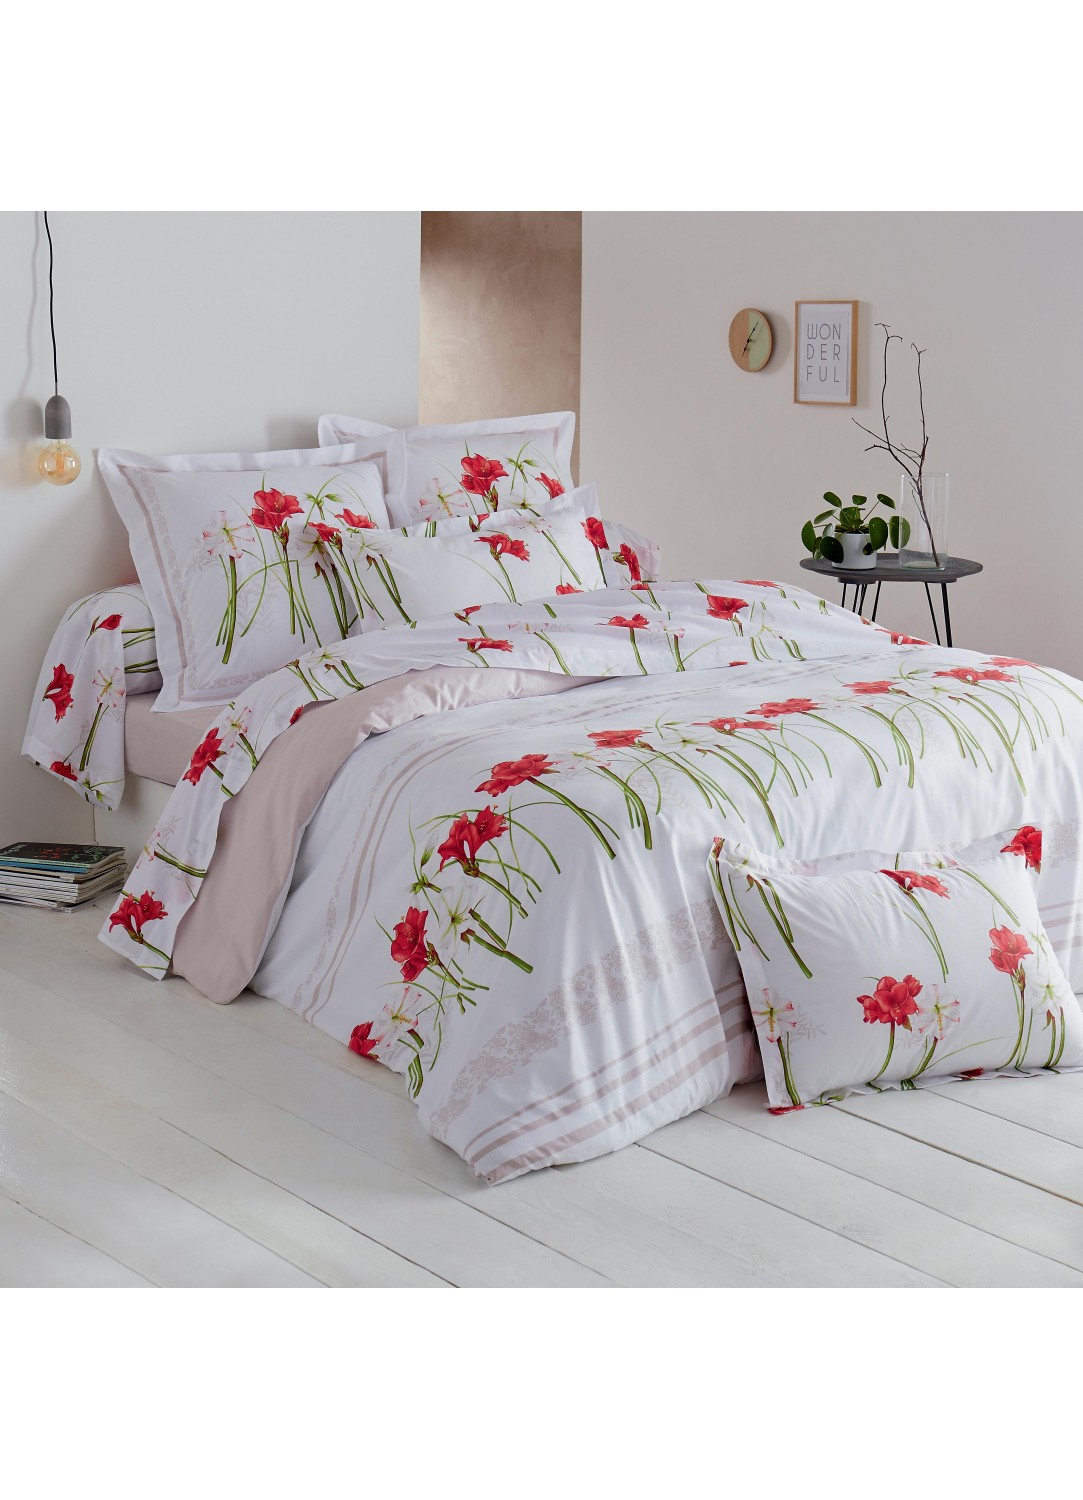 housse de couette imprim e amaryllis blanc et rouge homemaison vente en ligne housses de. Black Bedroom Furniture Sets. Home Design Ideas